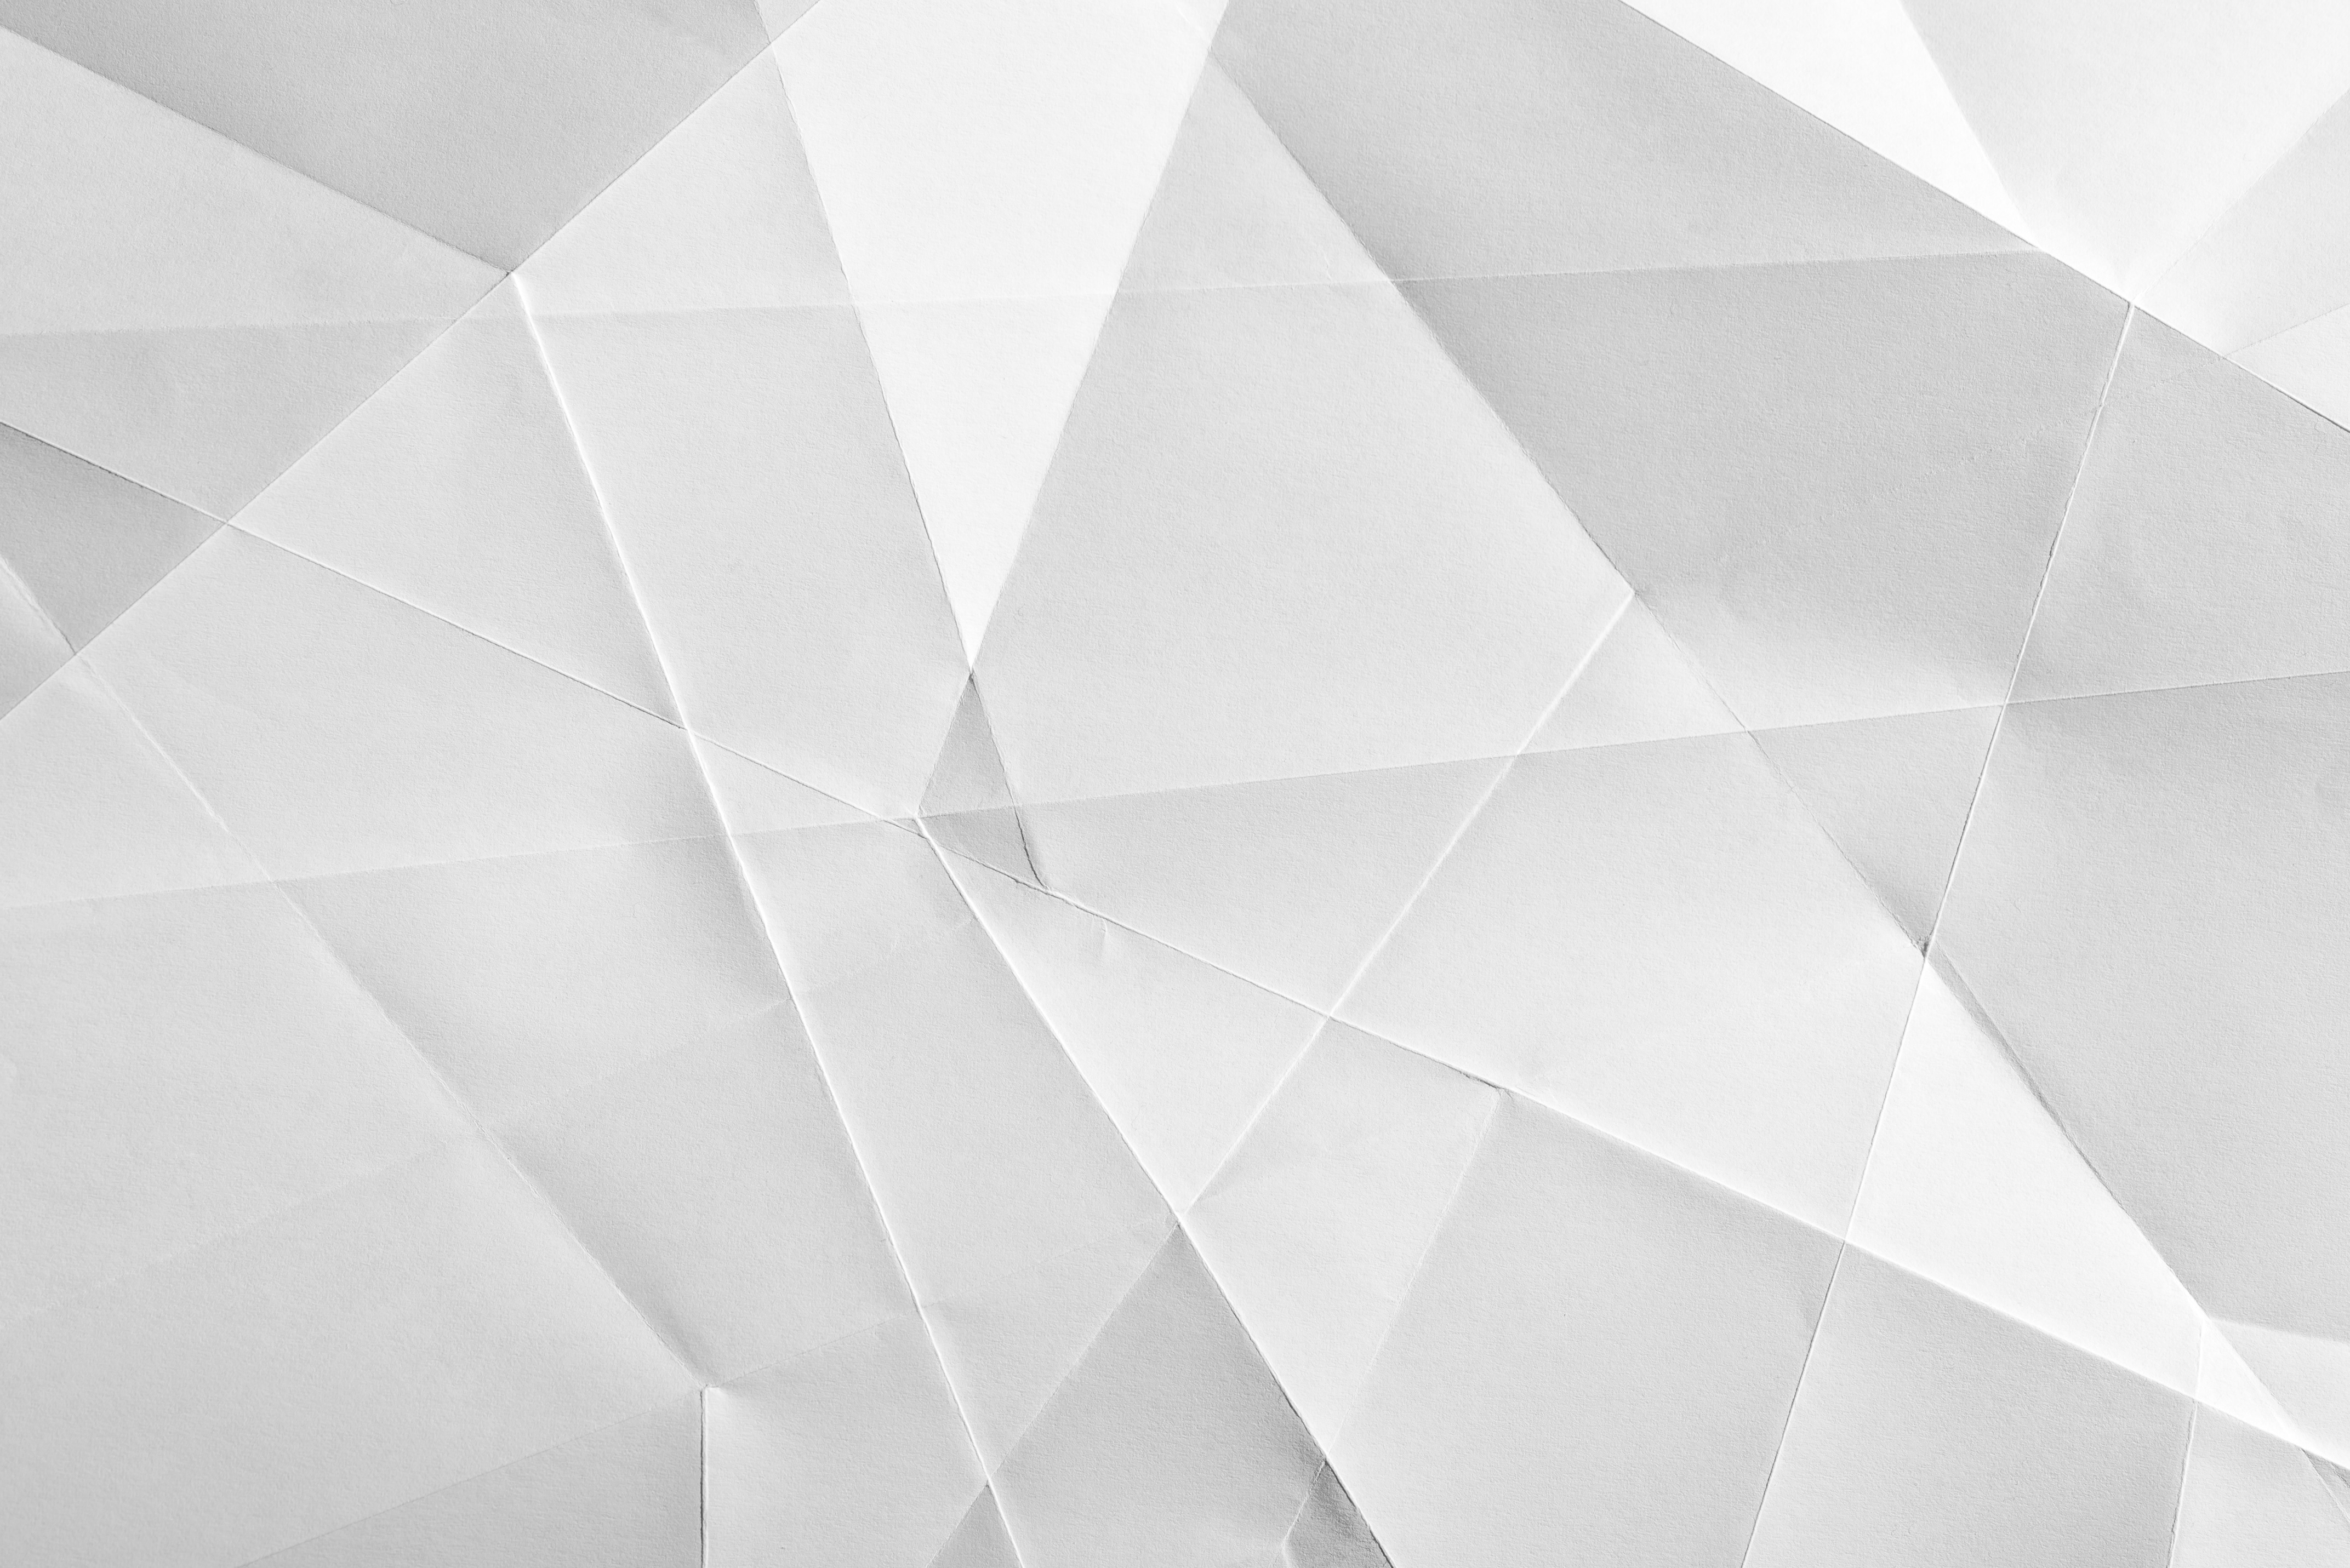 White folded sheet of paper showing an abstract texture design under the light grazing